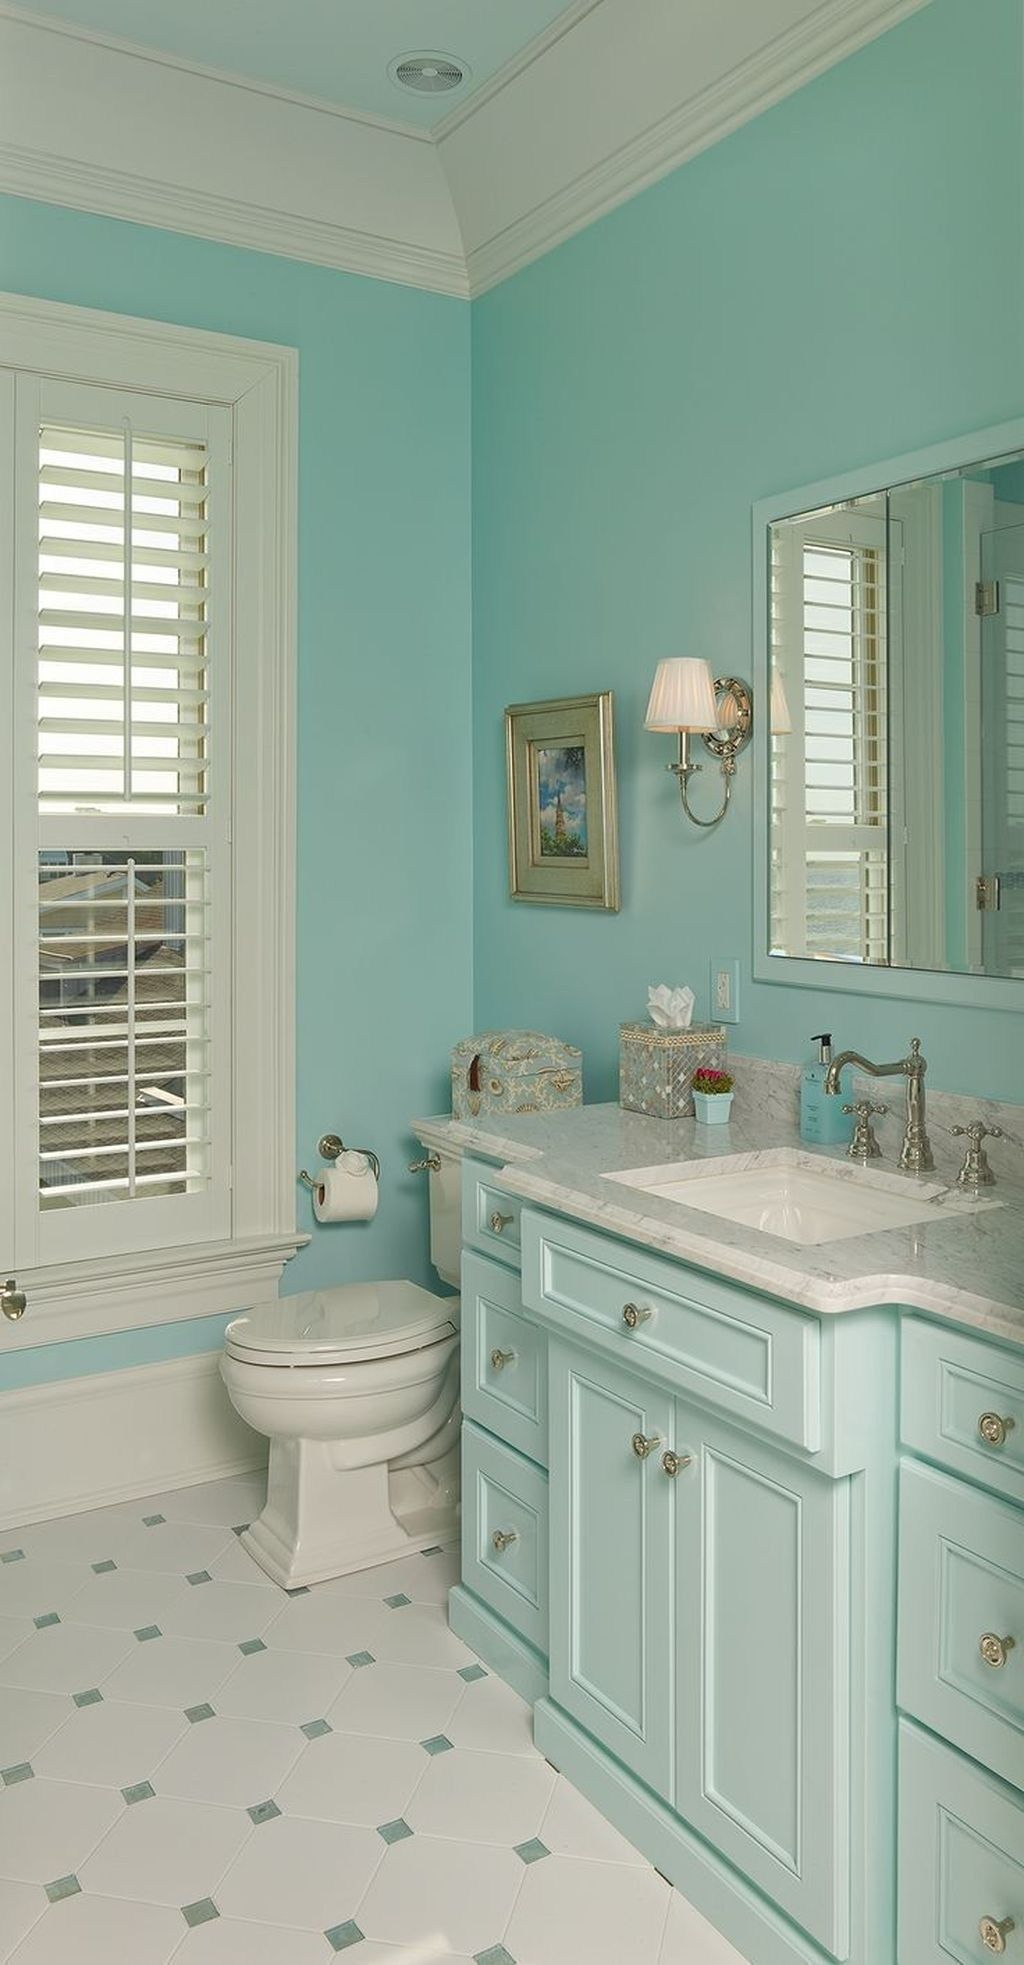 34 Great Coastal Bathroom Design And Decor (With images ...